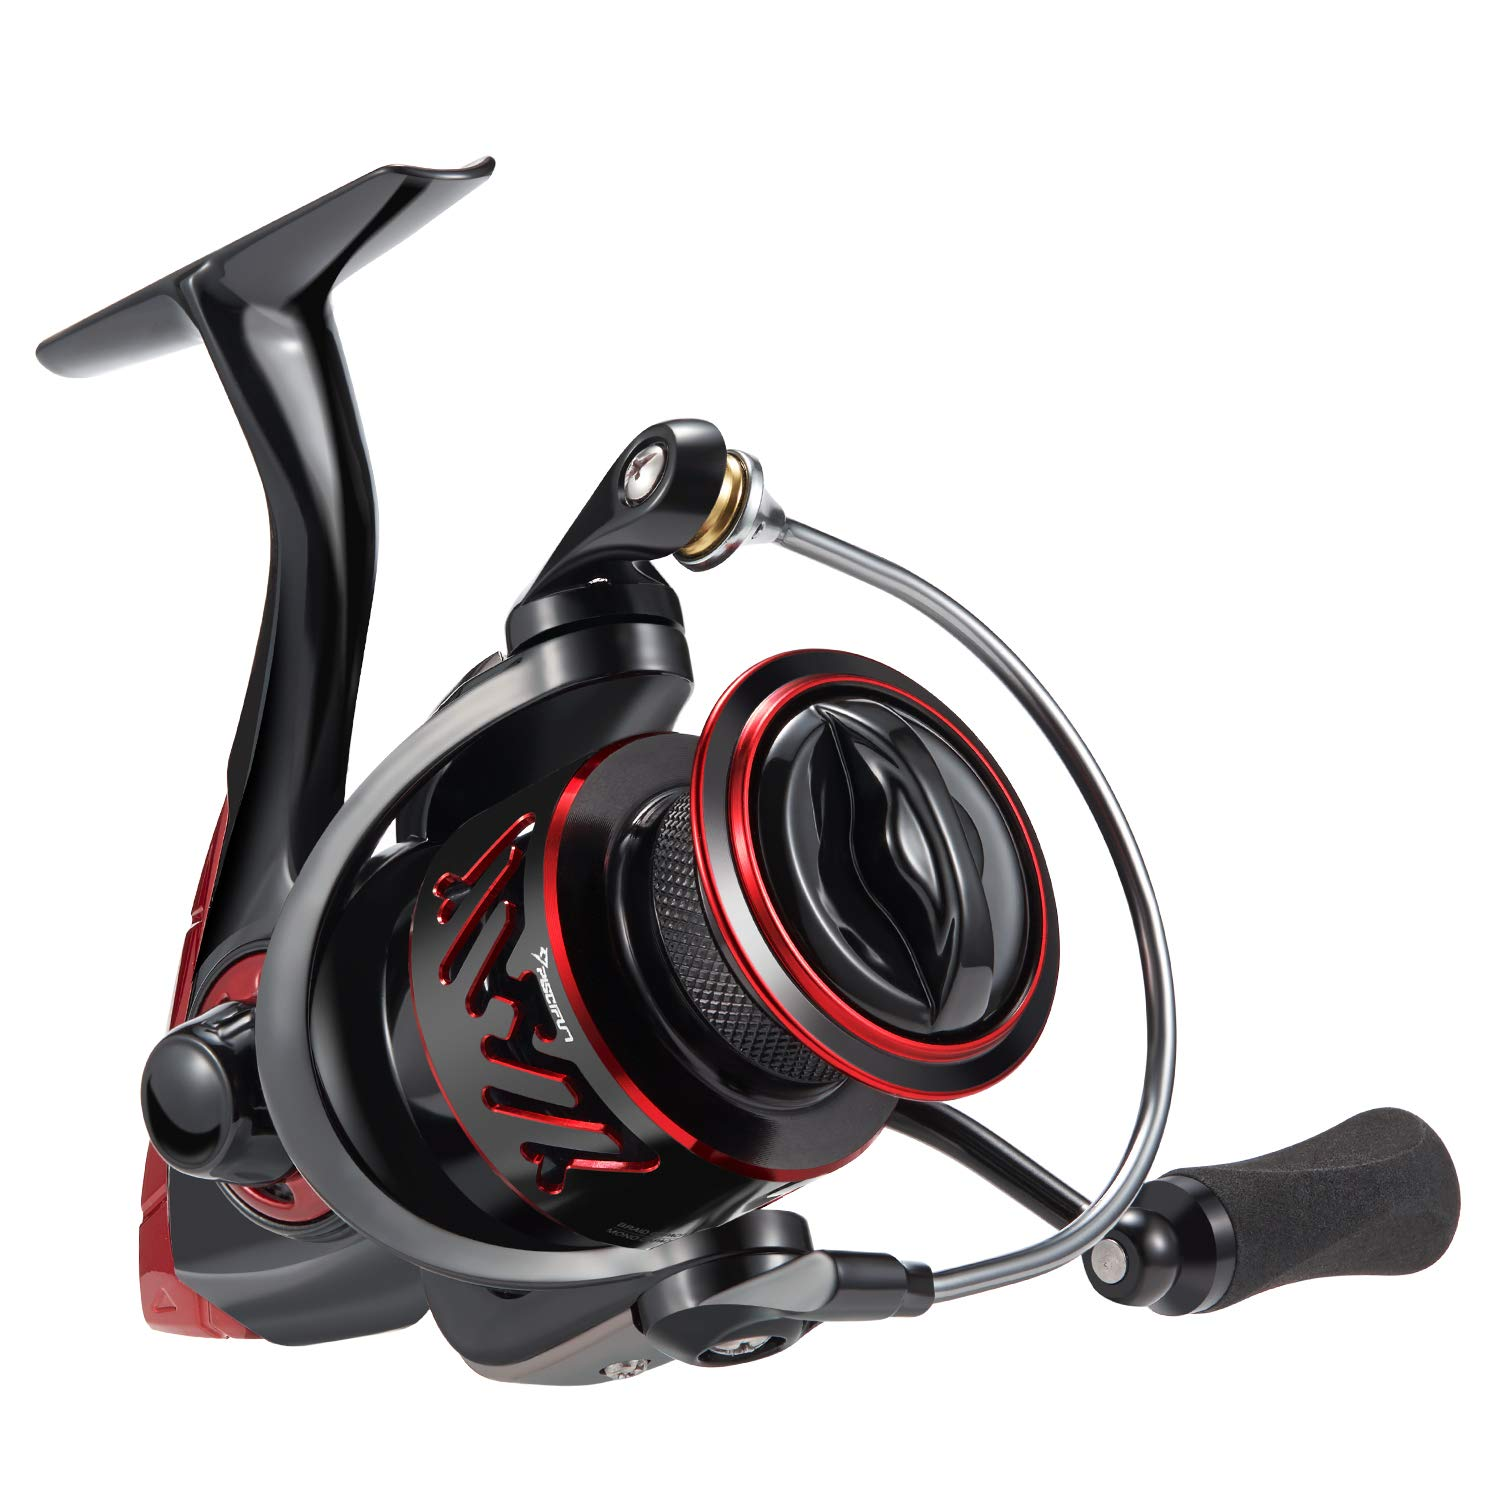 Piscifun Honor XT Fishing Reel – New Spinning Reel – 5.2 1, 6.2 1 High Speed Gear Ratio – 10 1 Stainless Steel Bearings – Freshwater and Saltwater Spinning Fishing Reels